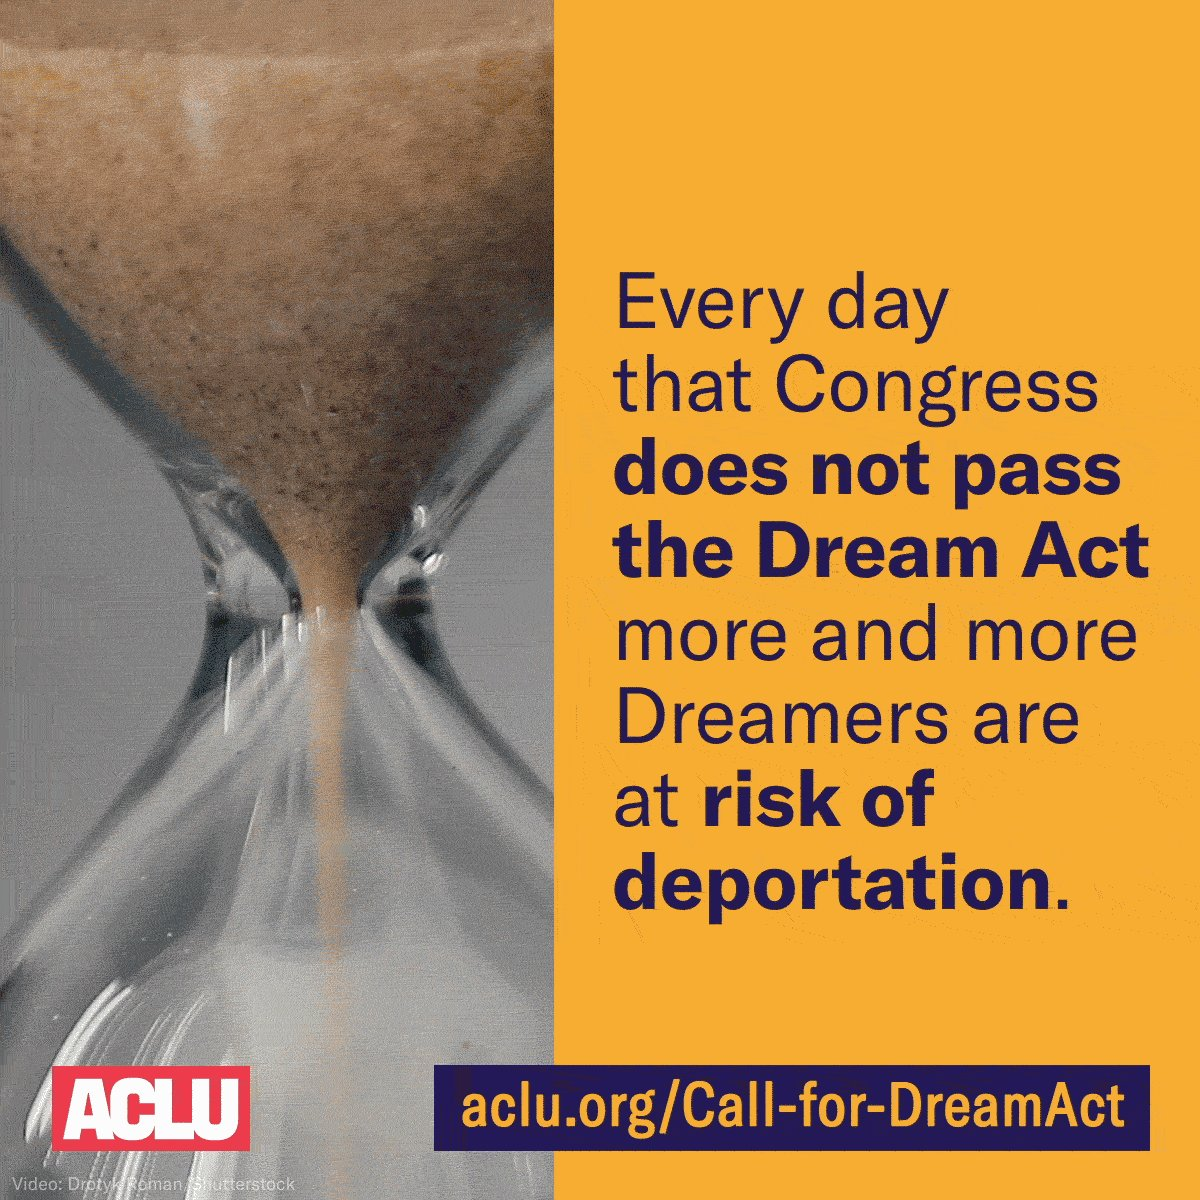 immigration: the dream act should pass essay - 901 words A research on the economic benefits the dream act would bring was conducted by juan carlos and raul jara, which showed that if the united states was to allow the passage of the dream act, $329 billion would be added to the us economy.